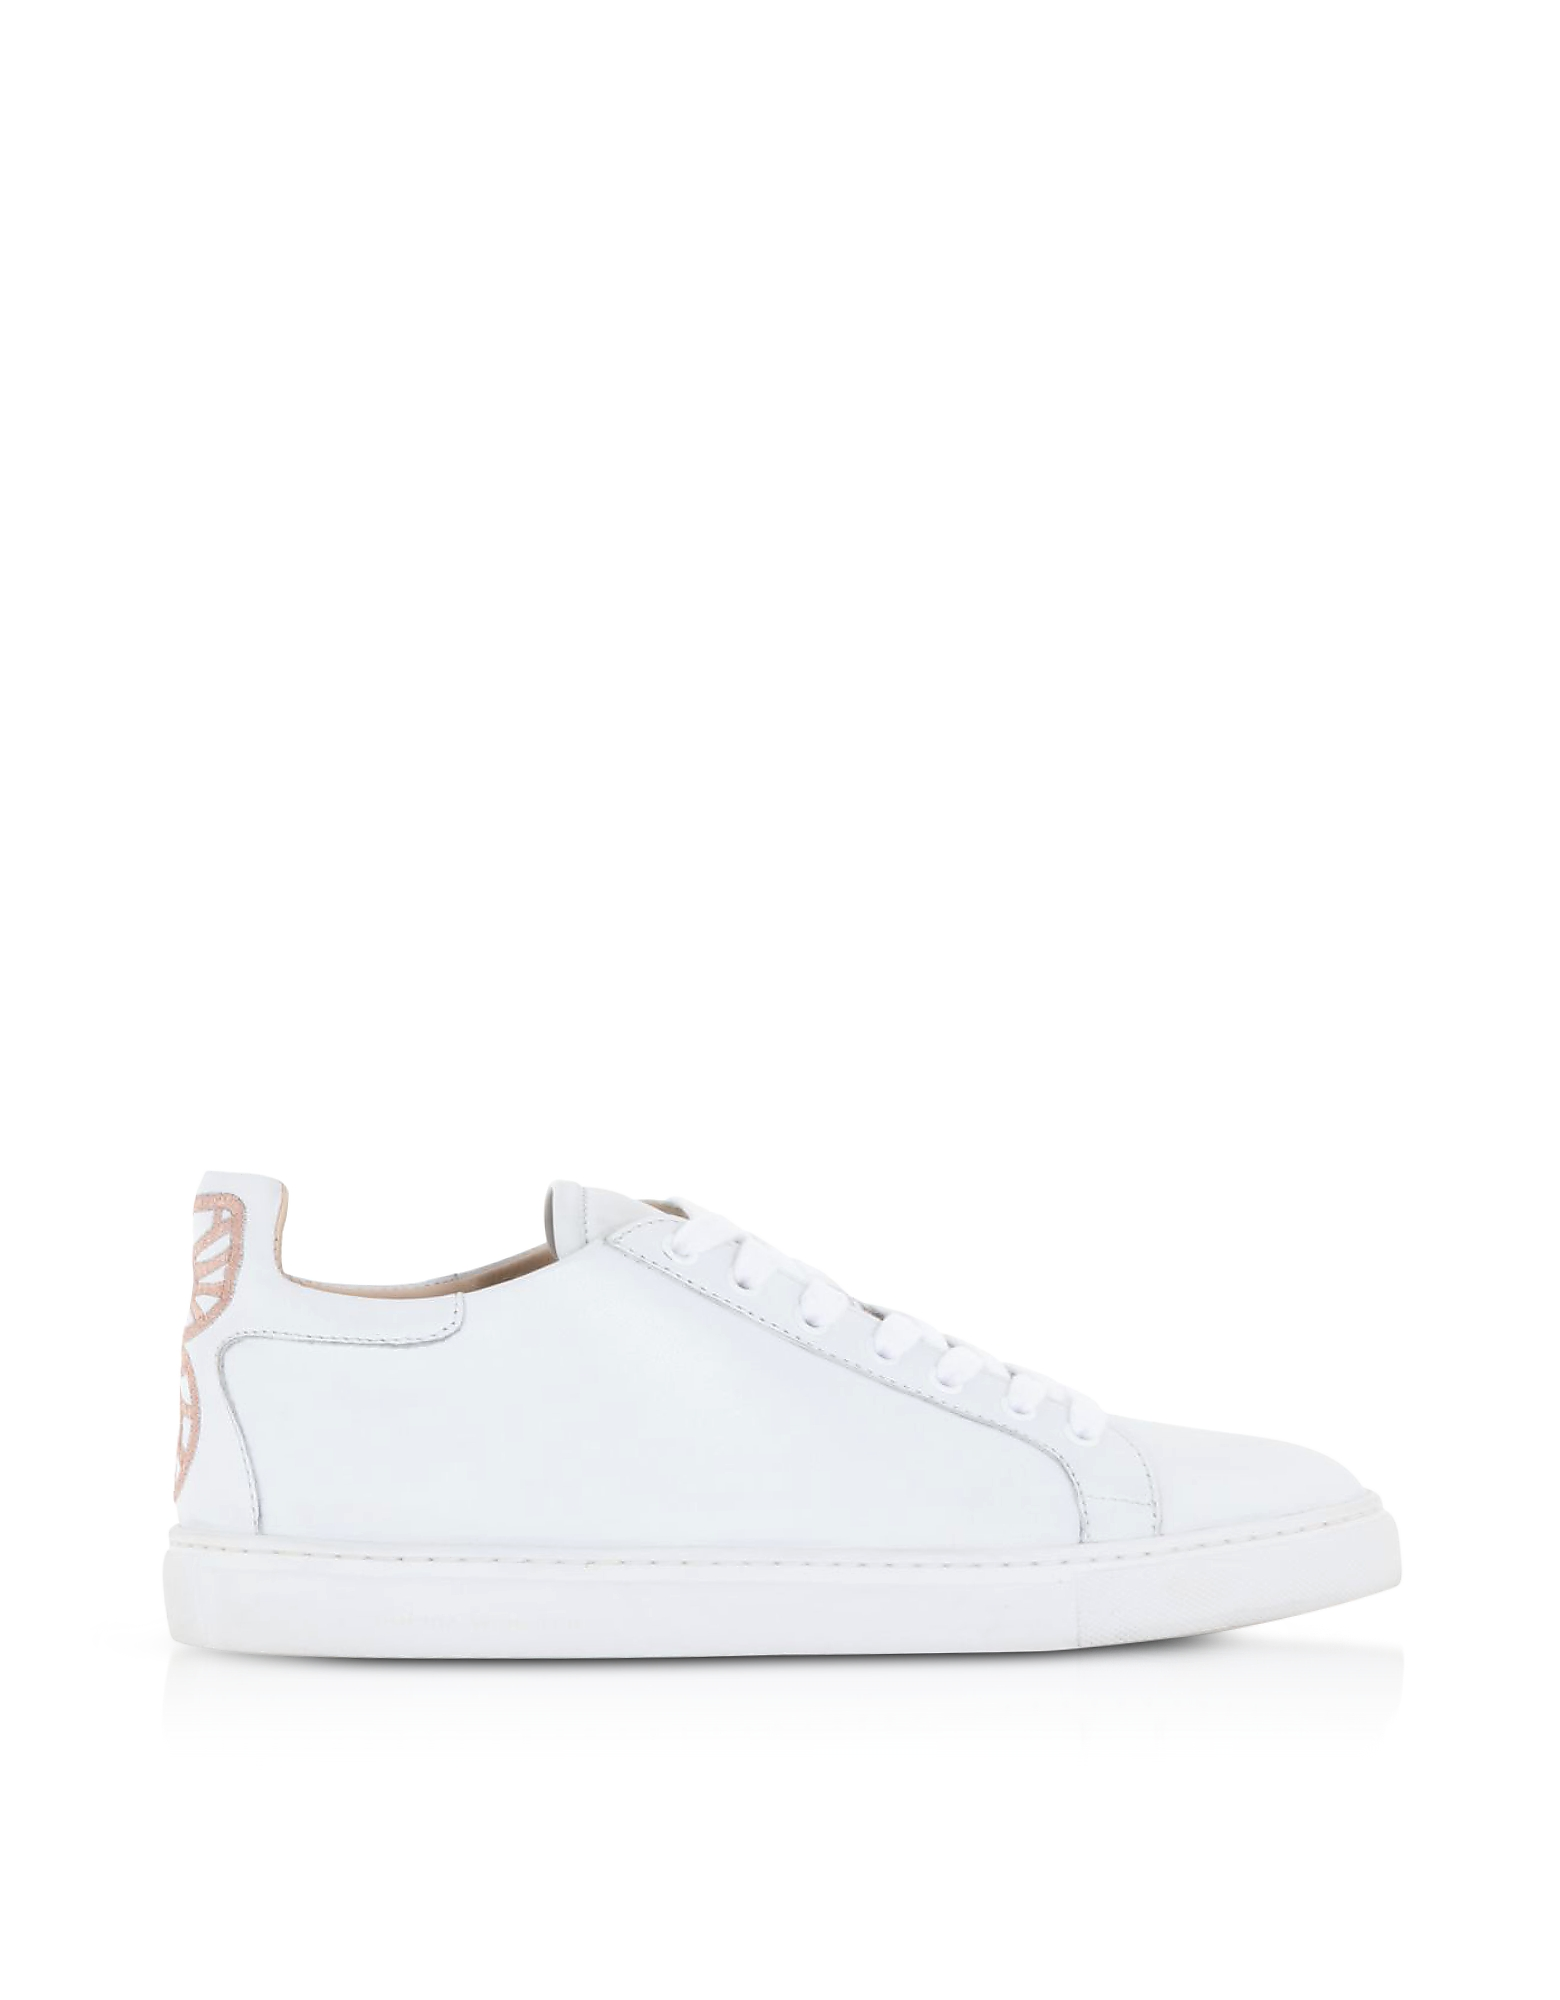 Sophia Webster Designer Shoes Bibi White and Baby Pink Low Top Sneakers